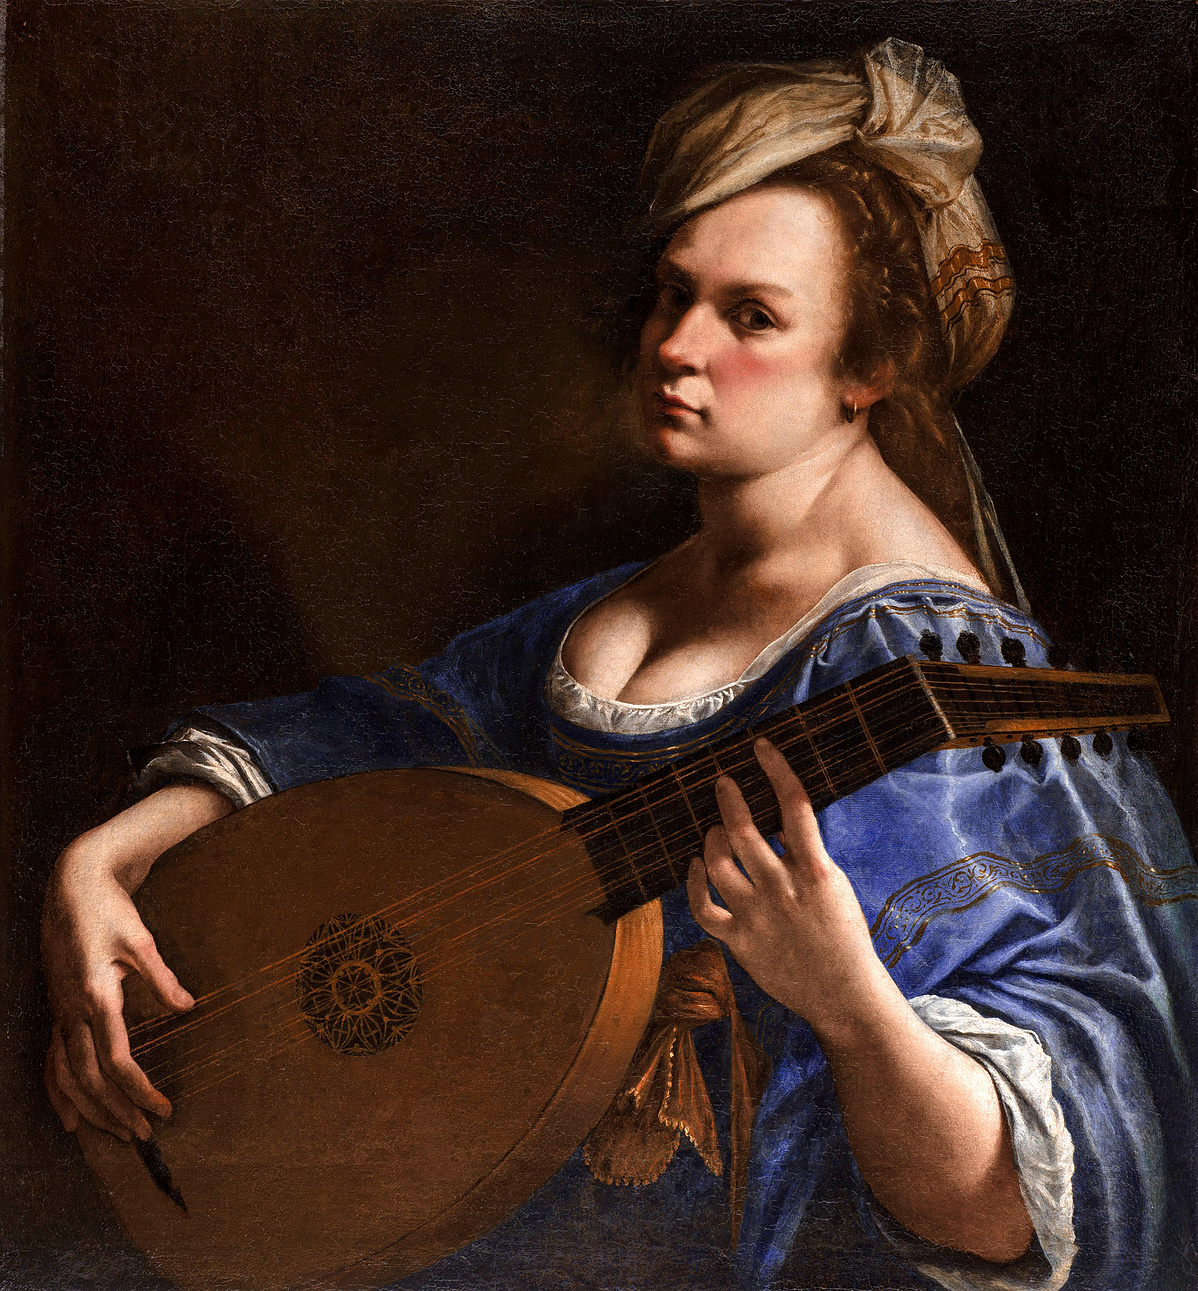 Artemisia_Gentileschi_-_Self-Portrait_as_a_Lute_Player-091954.jpg